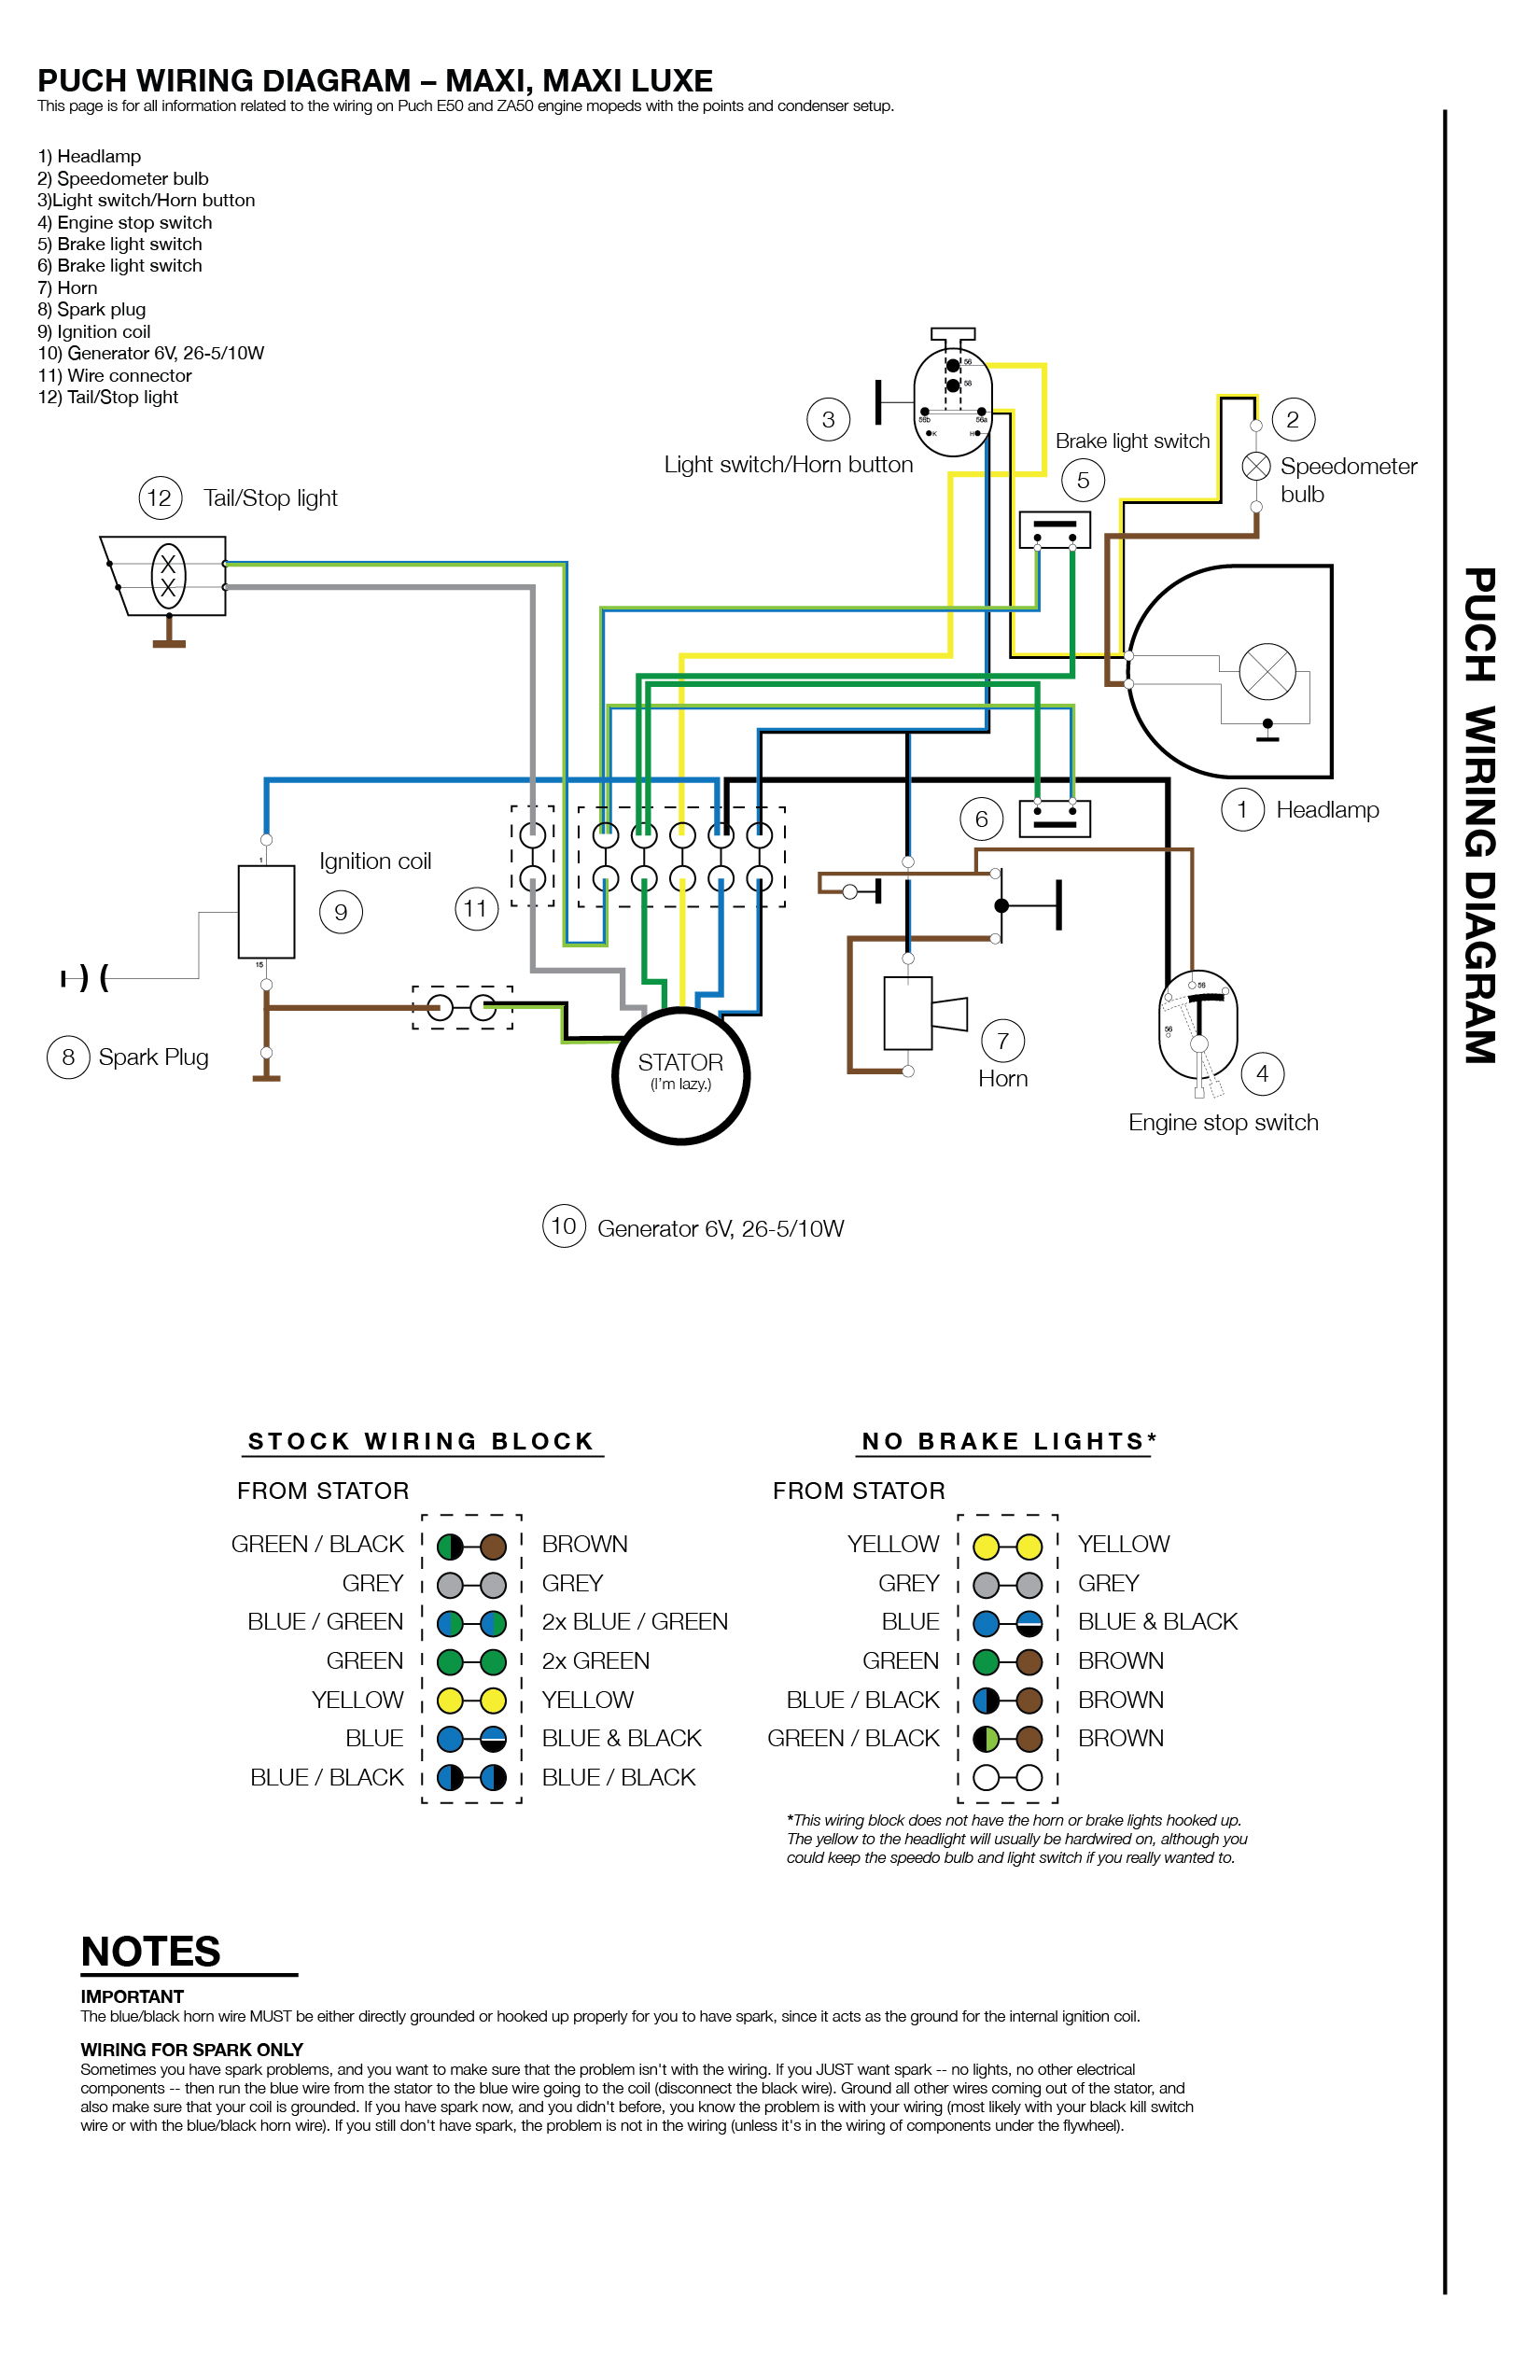 Wiring Diagram 4 Lights 2 Plugs - 4.gt.capecoral-bootsvermietung.de